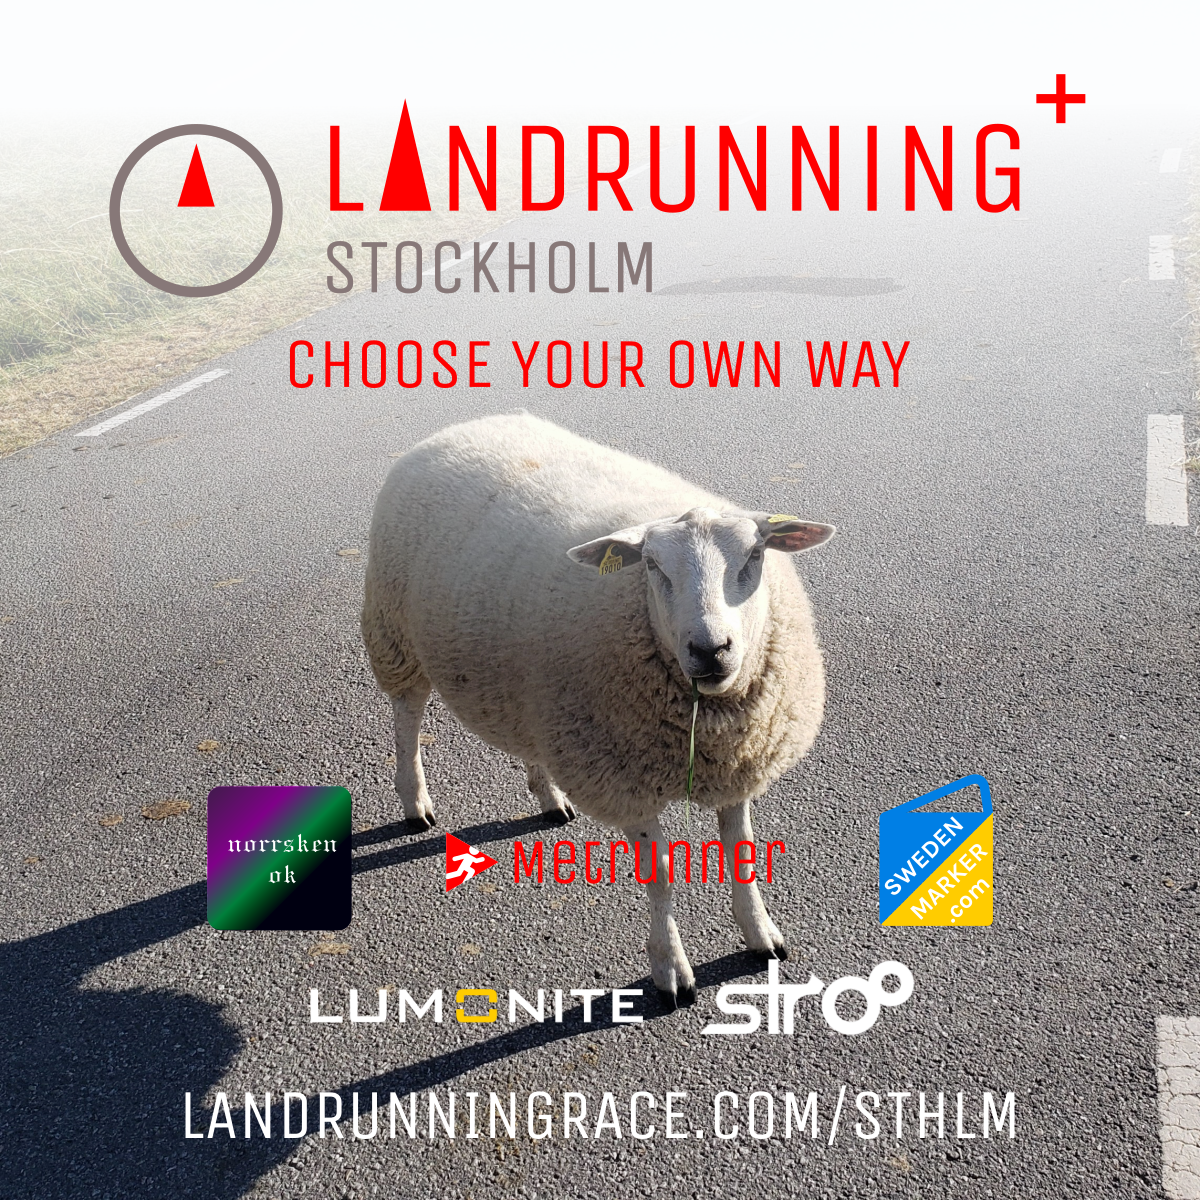 Landrunning Stockholm - choose your own way